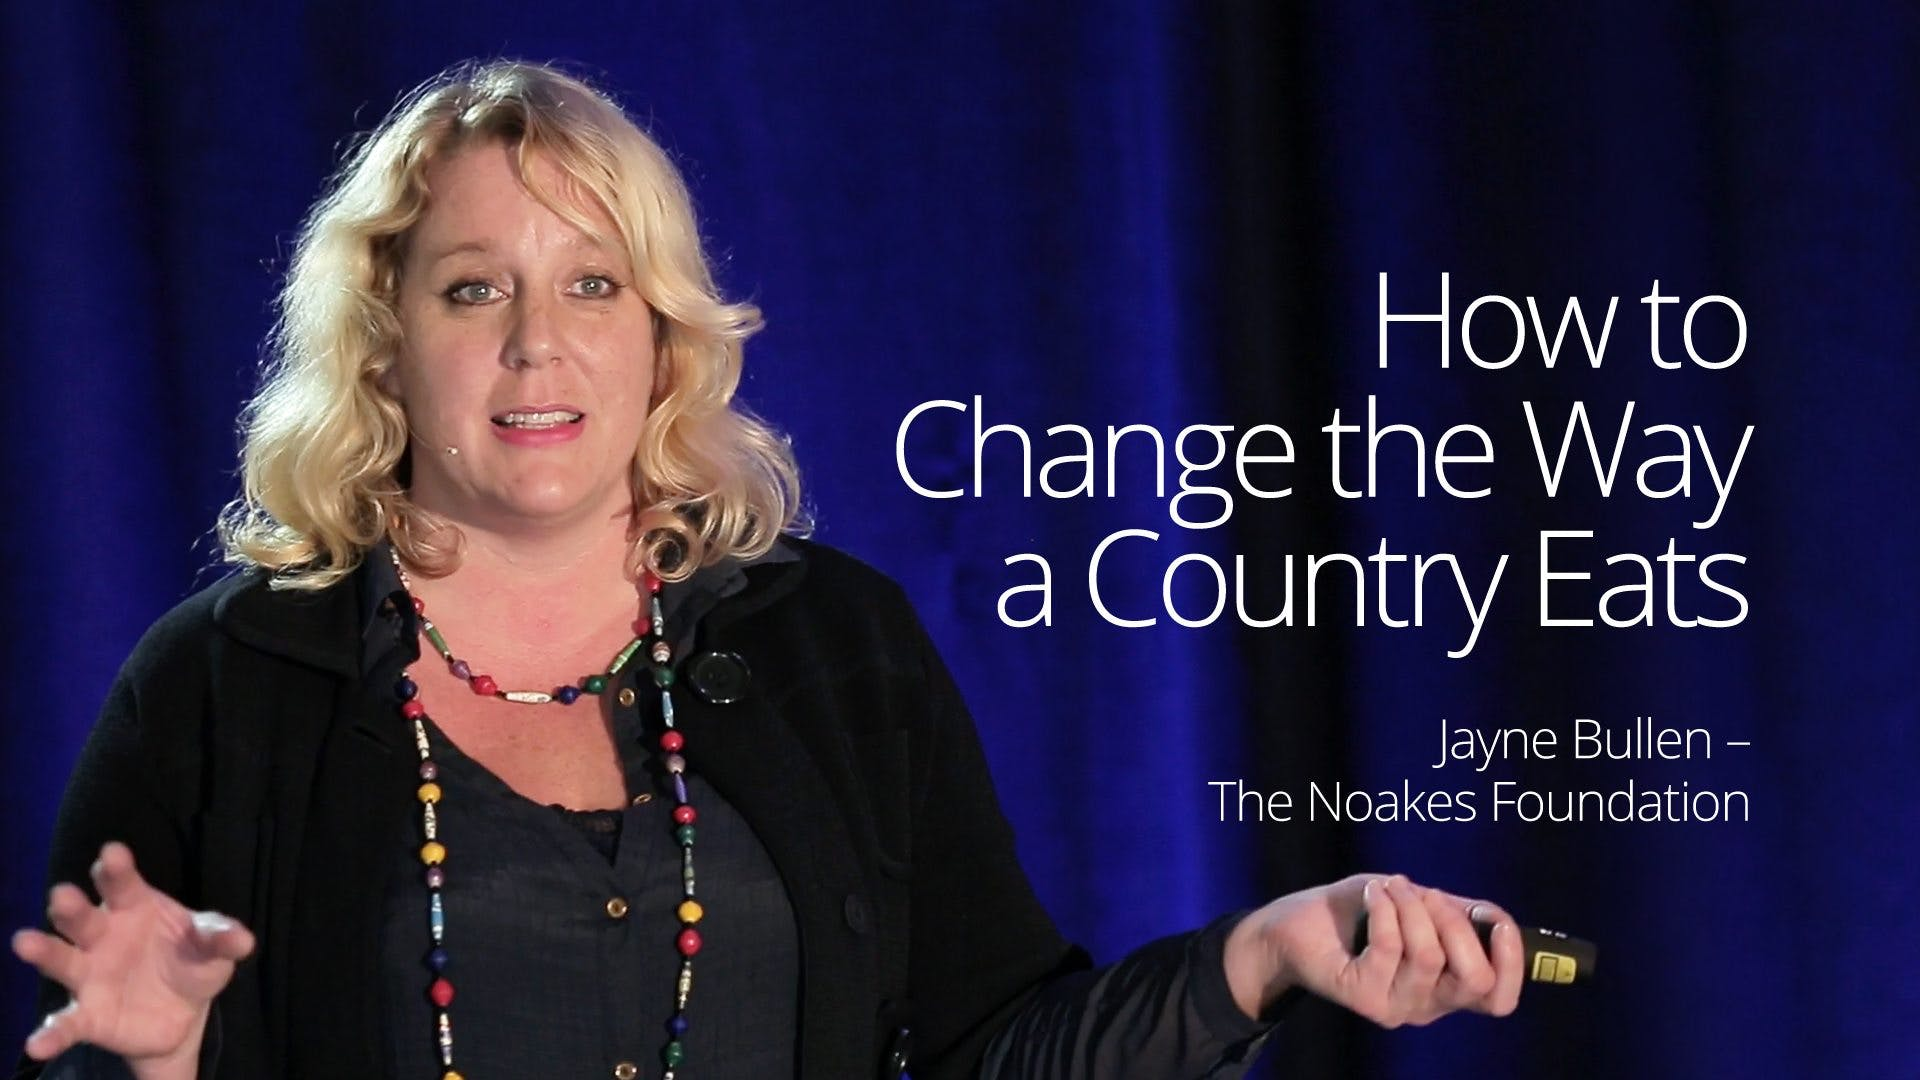 How to Change the Way a Country Eats